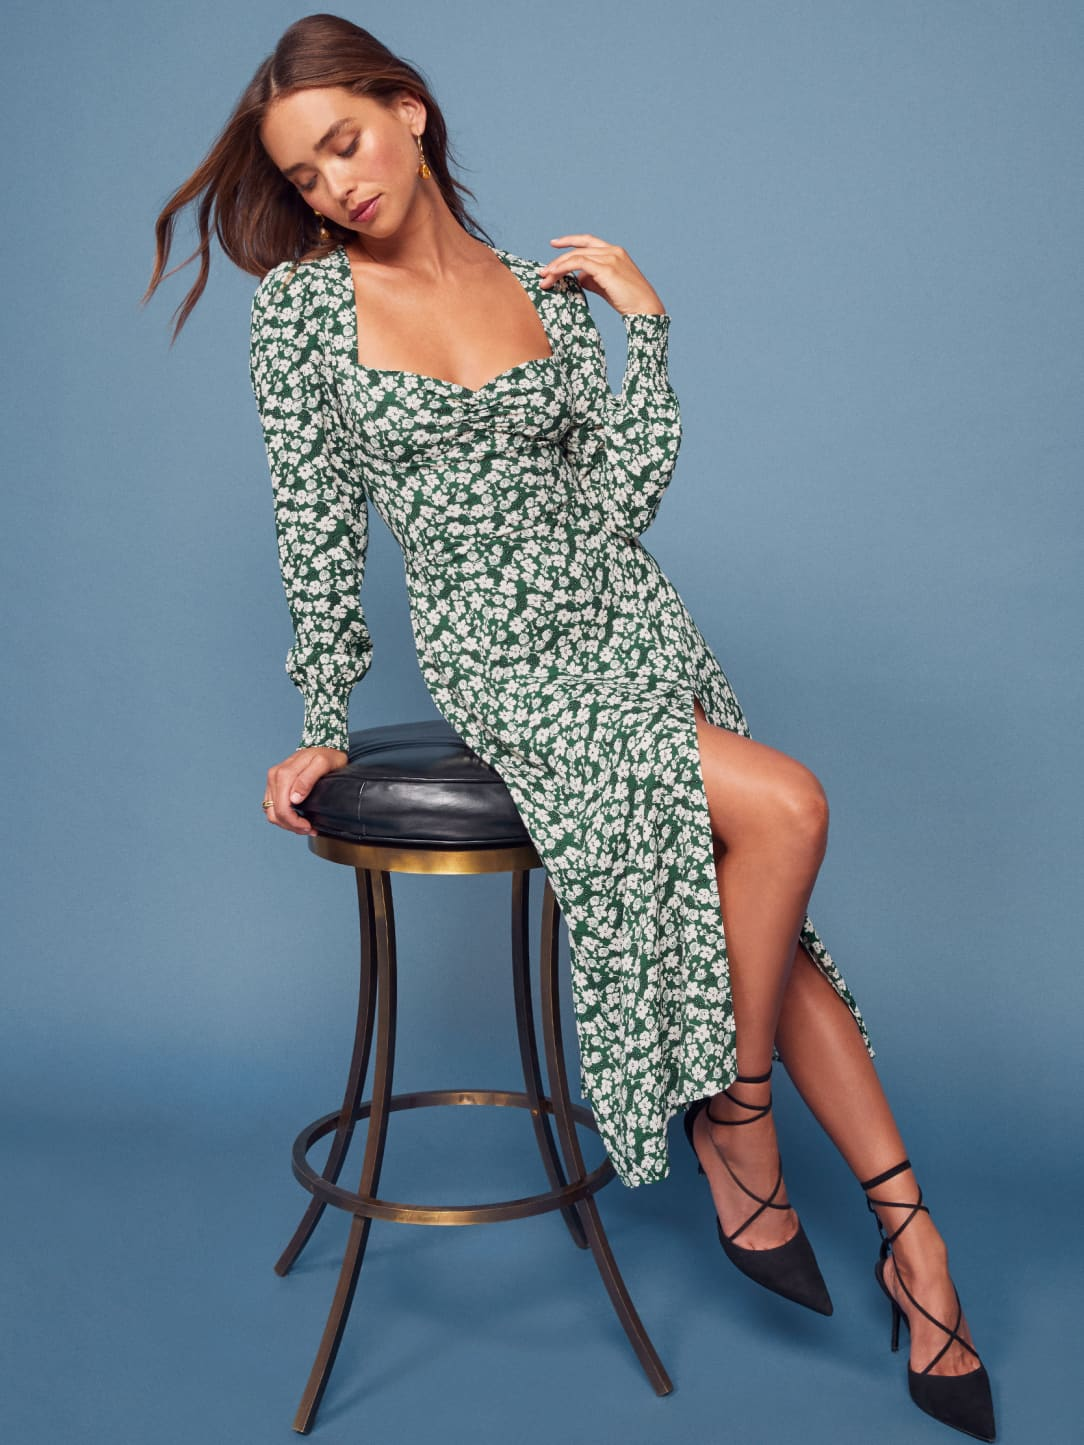 A woman in a green floral dress from Reformation sits on a stool against a dark blue background.